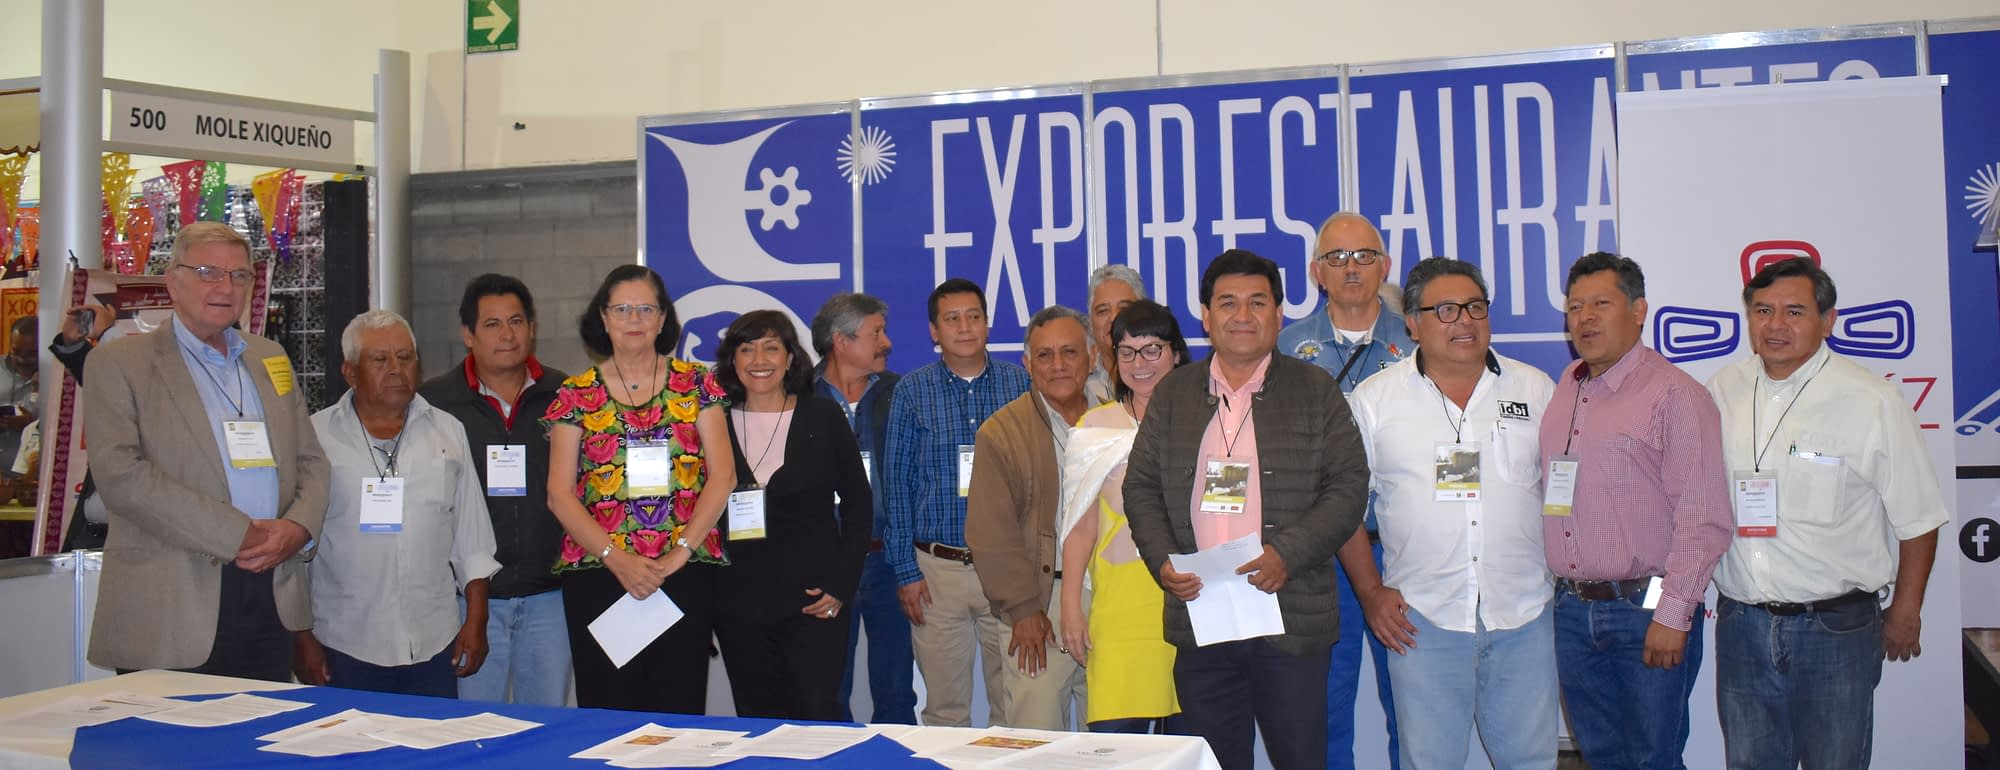 Members of the association gather for a photo at the launch event. (Photo: ProMaíz Nativo)